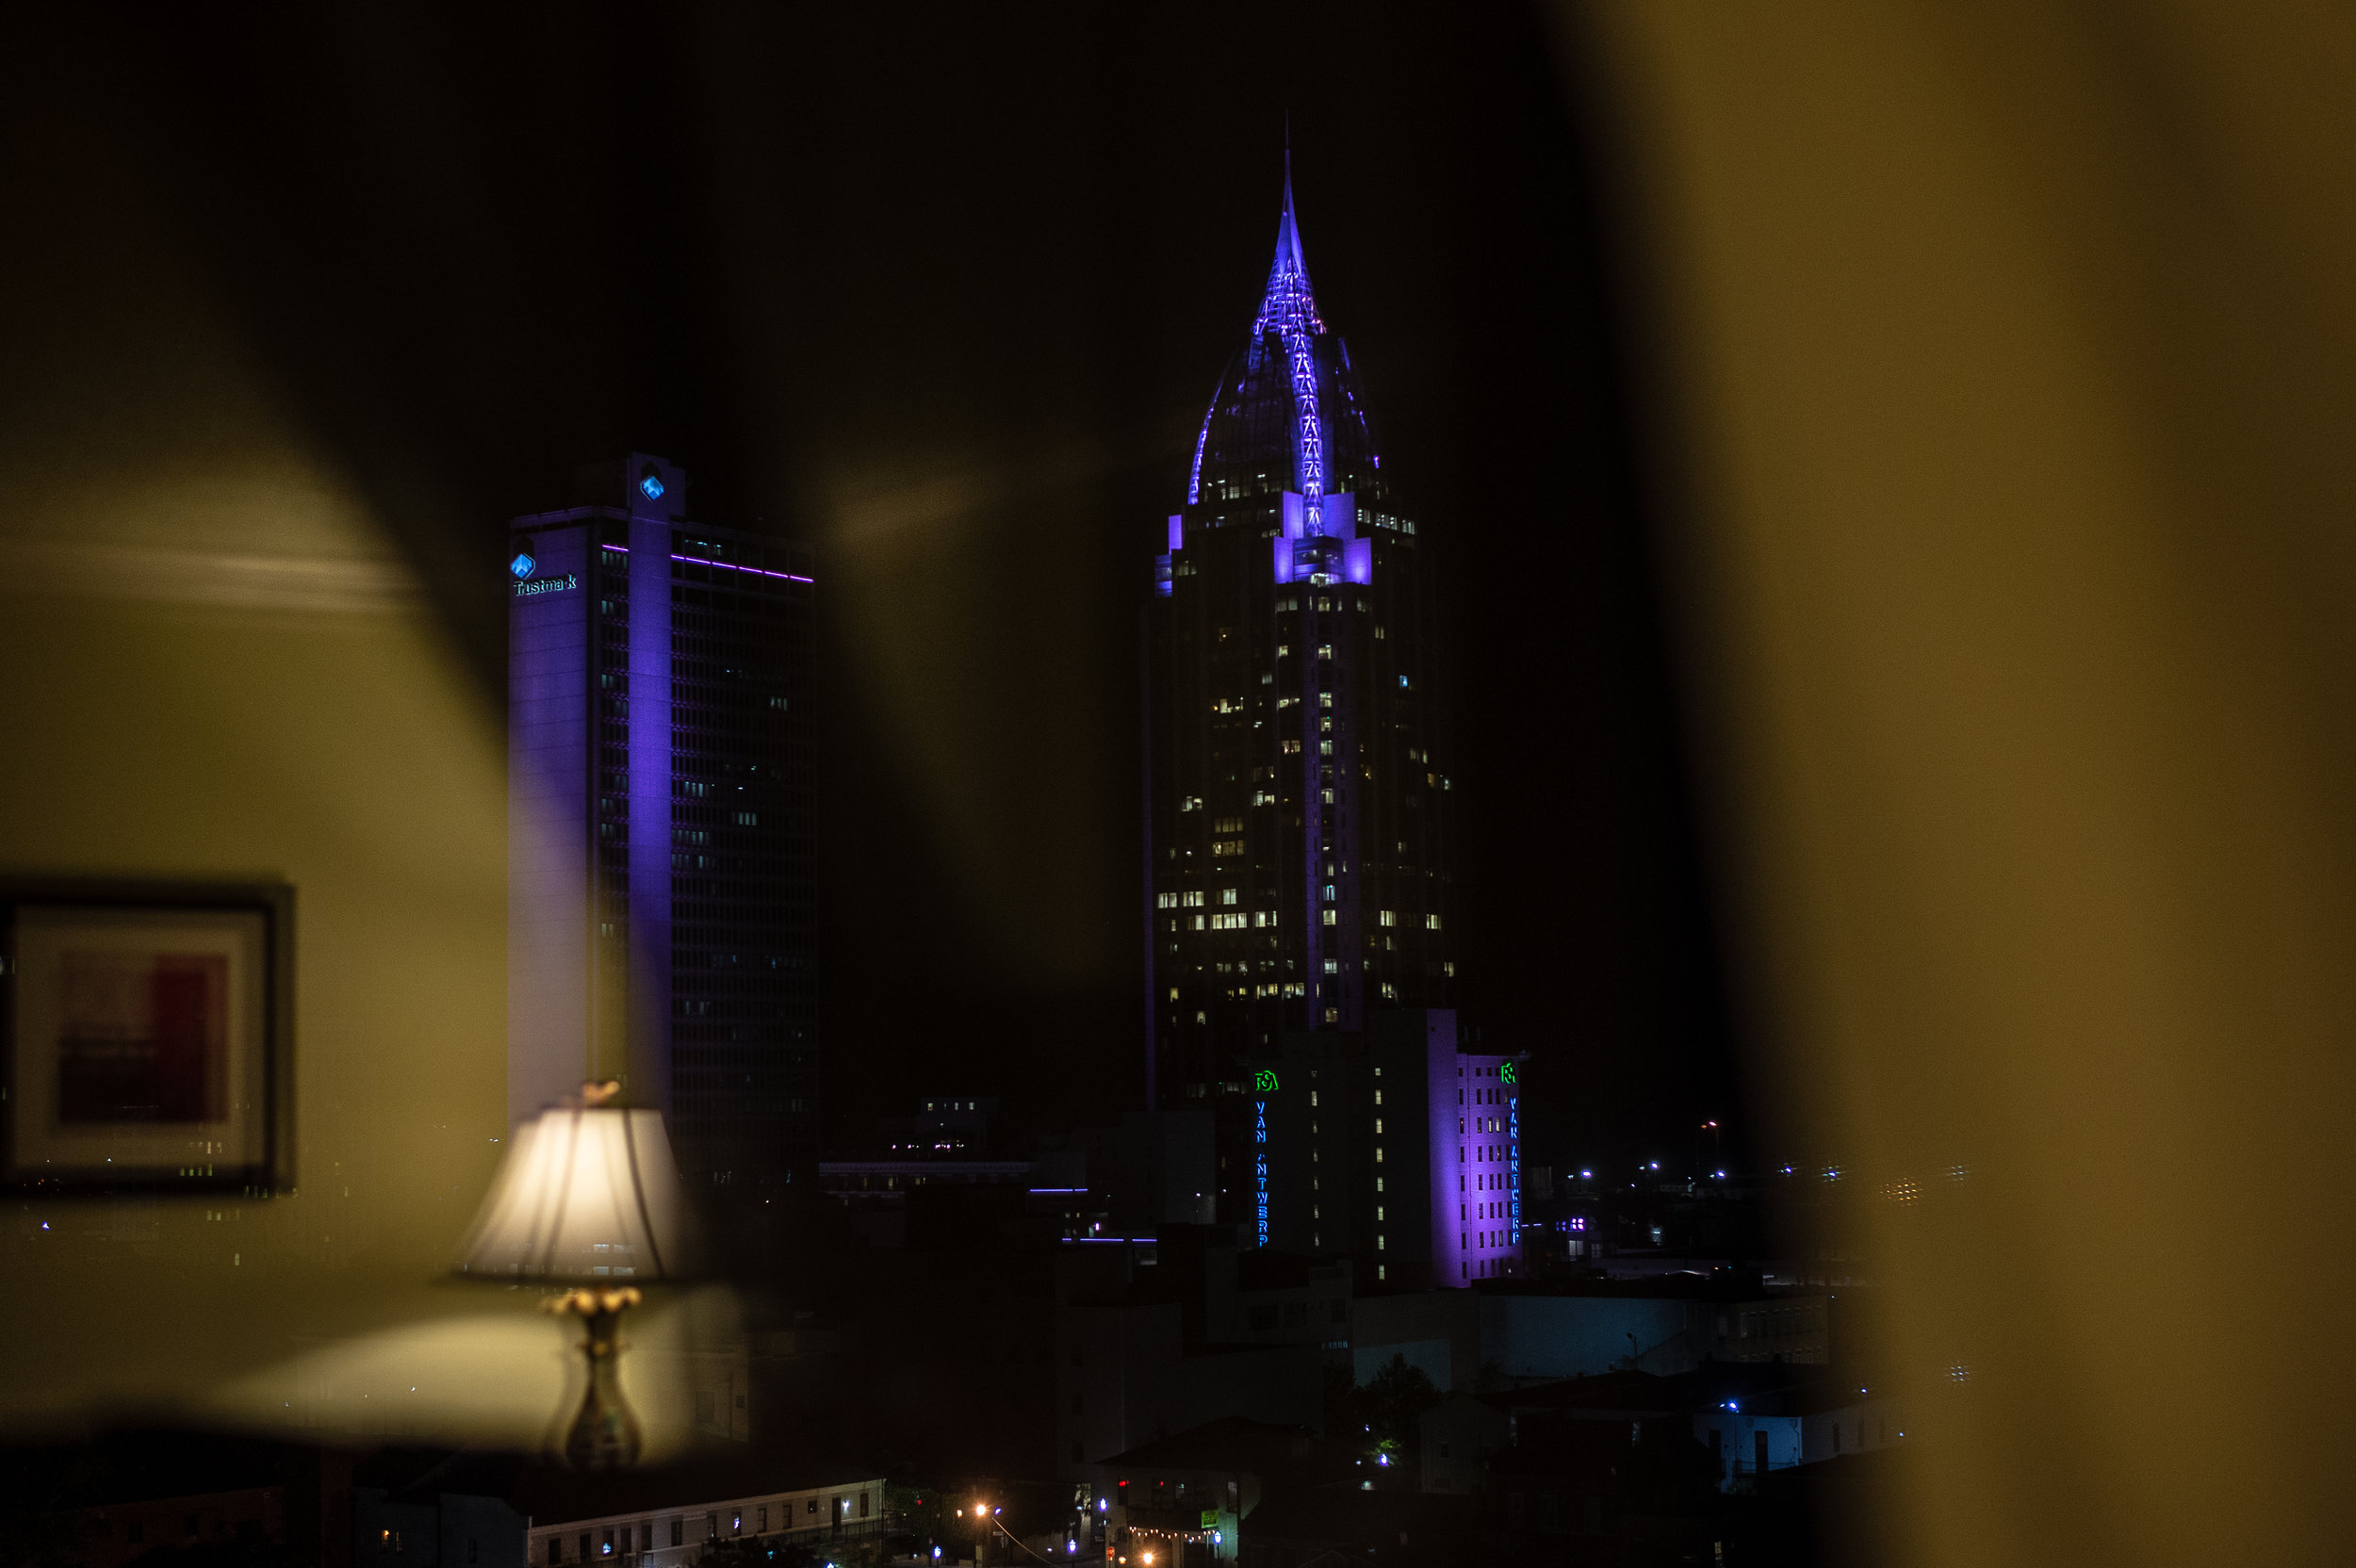 holiday inn mobile night reflection.jpg